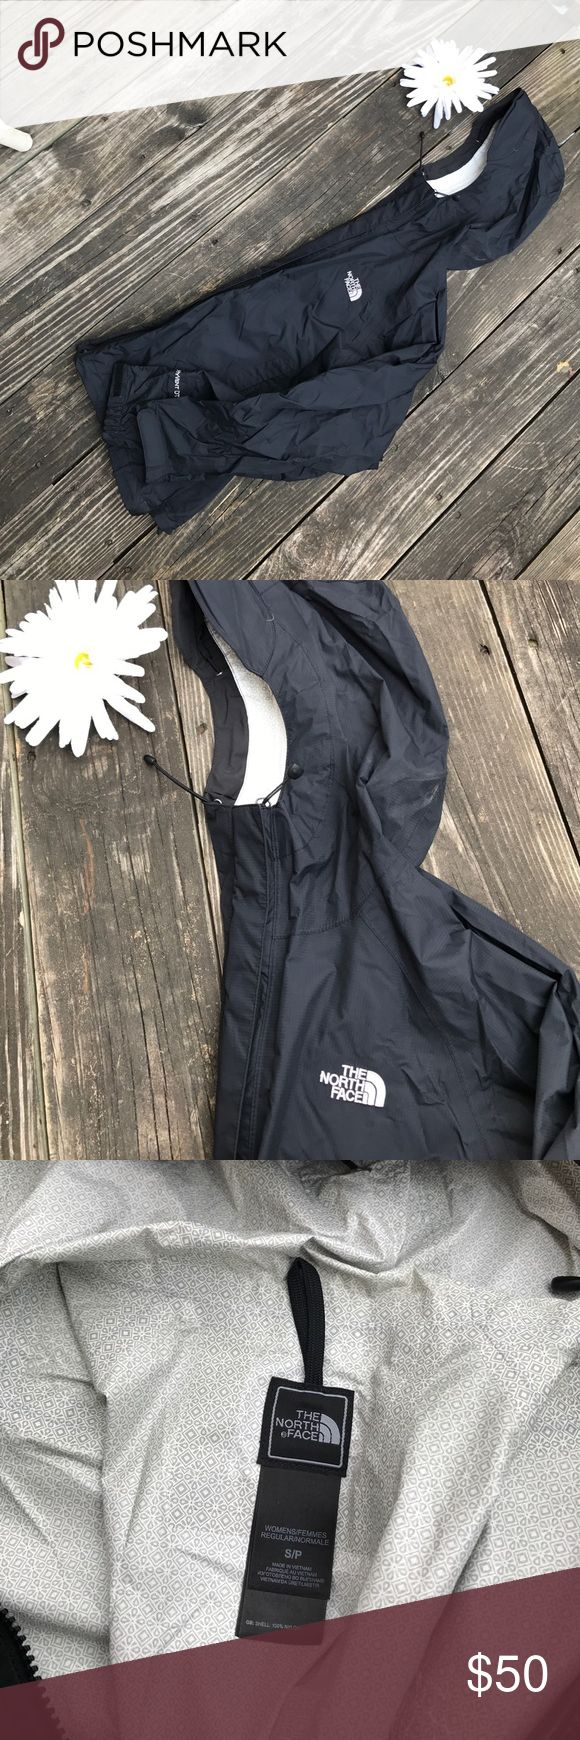 North Face black rain jacket Size small/petite, black, worn, North Face brand, rain jacket with good North Face Jackets & Coats Utility Jackets